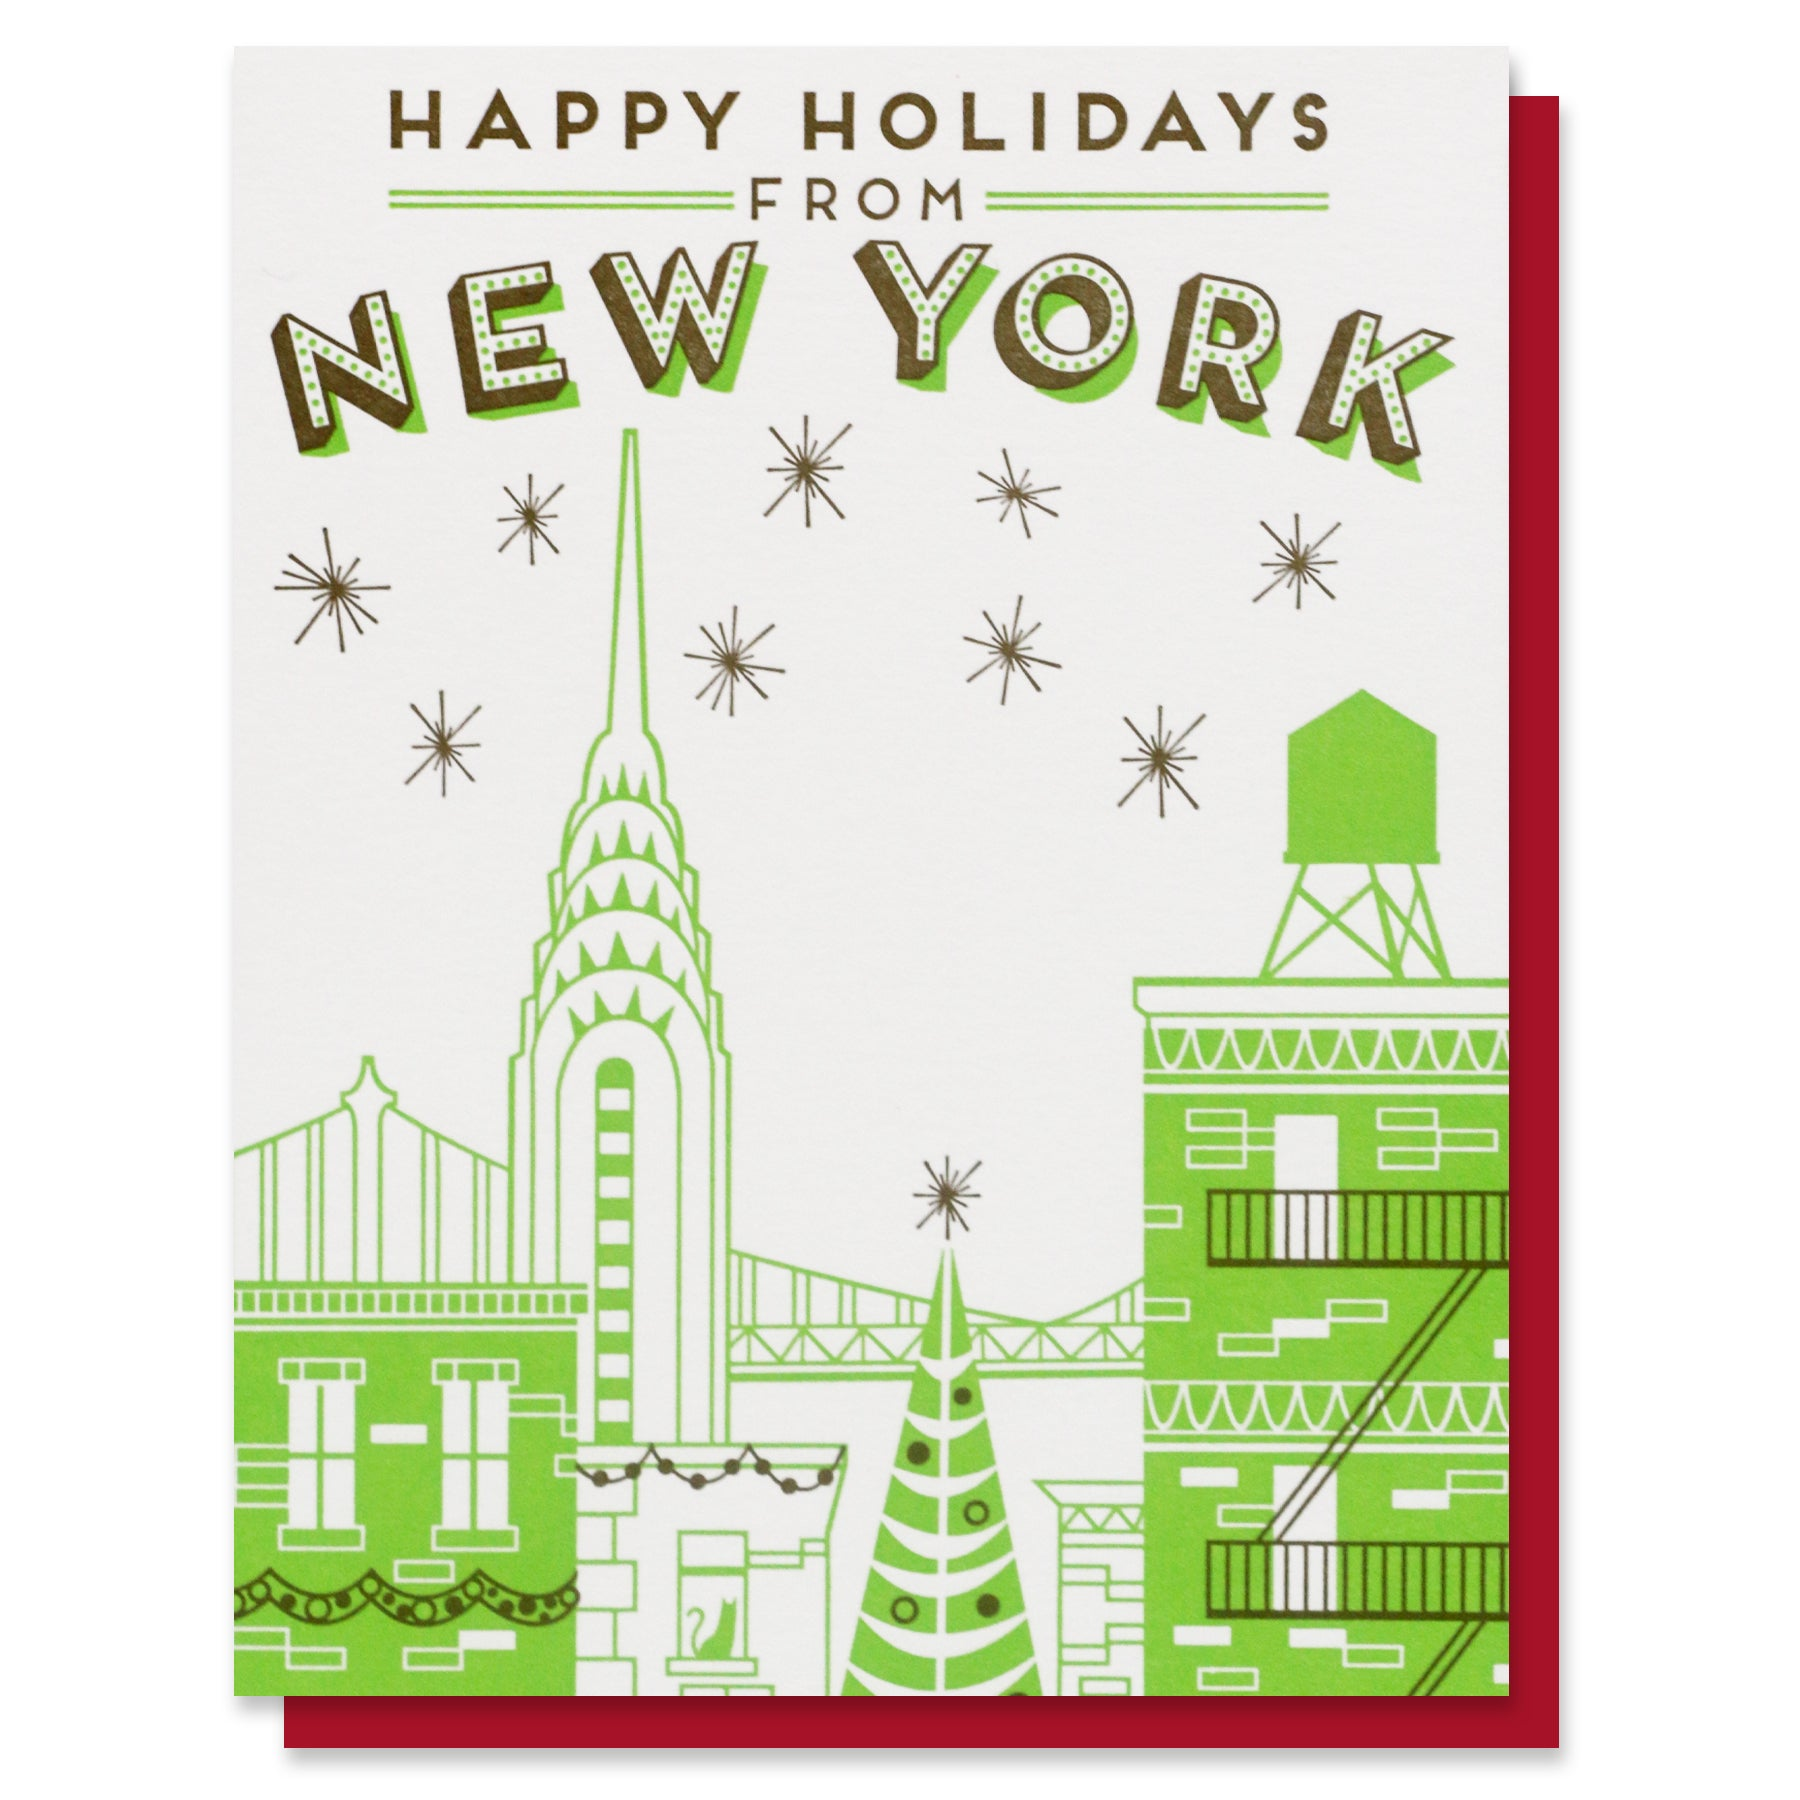 Happy Holidays from New York Card